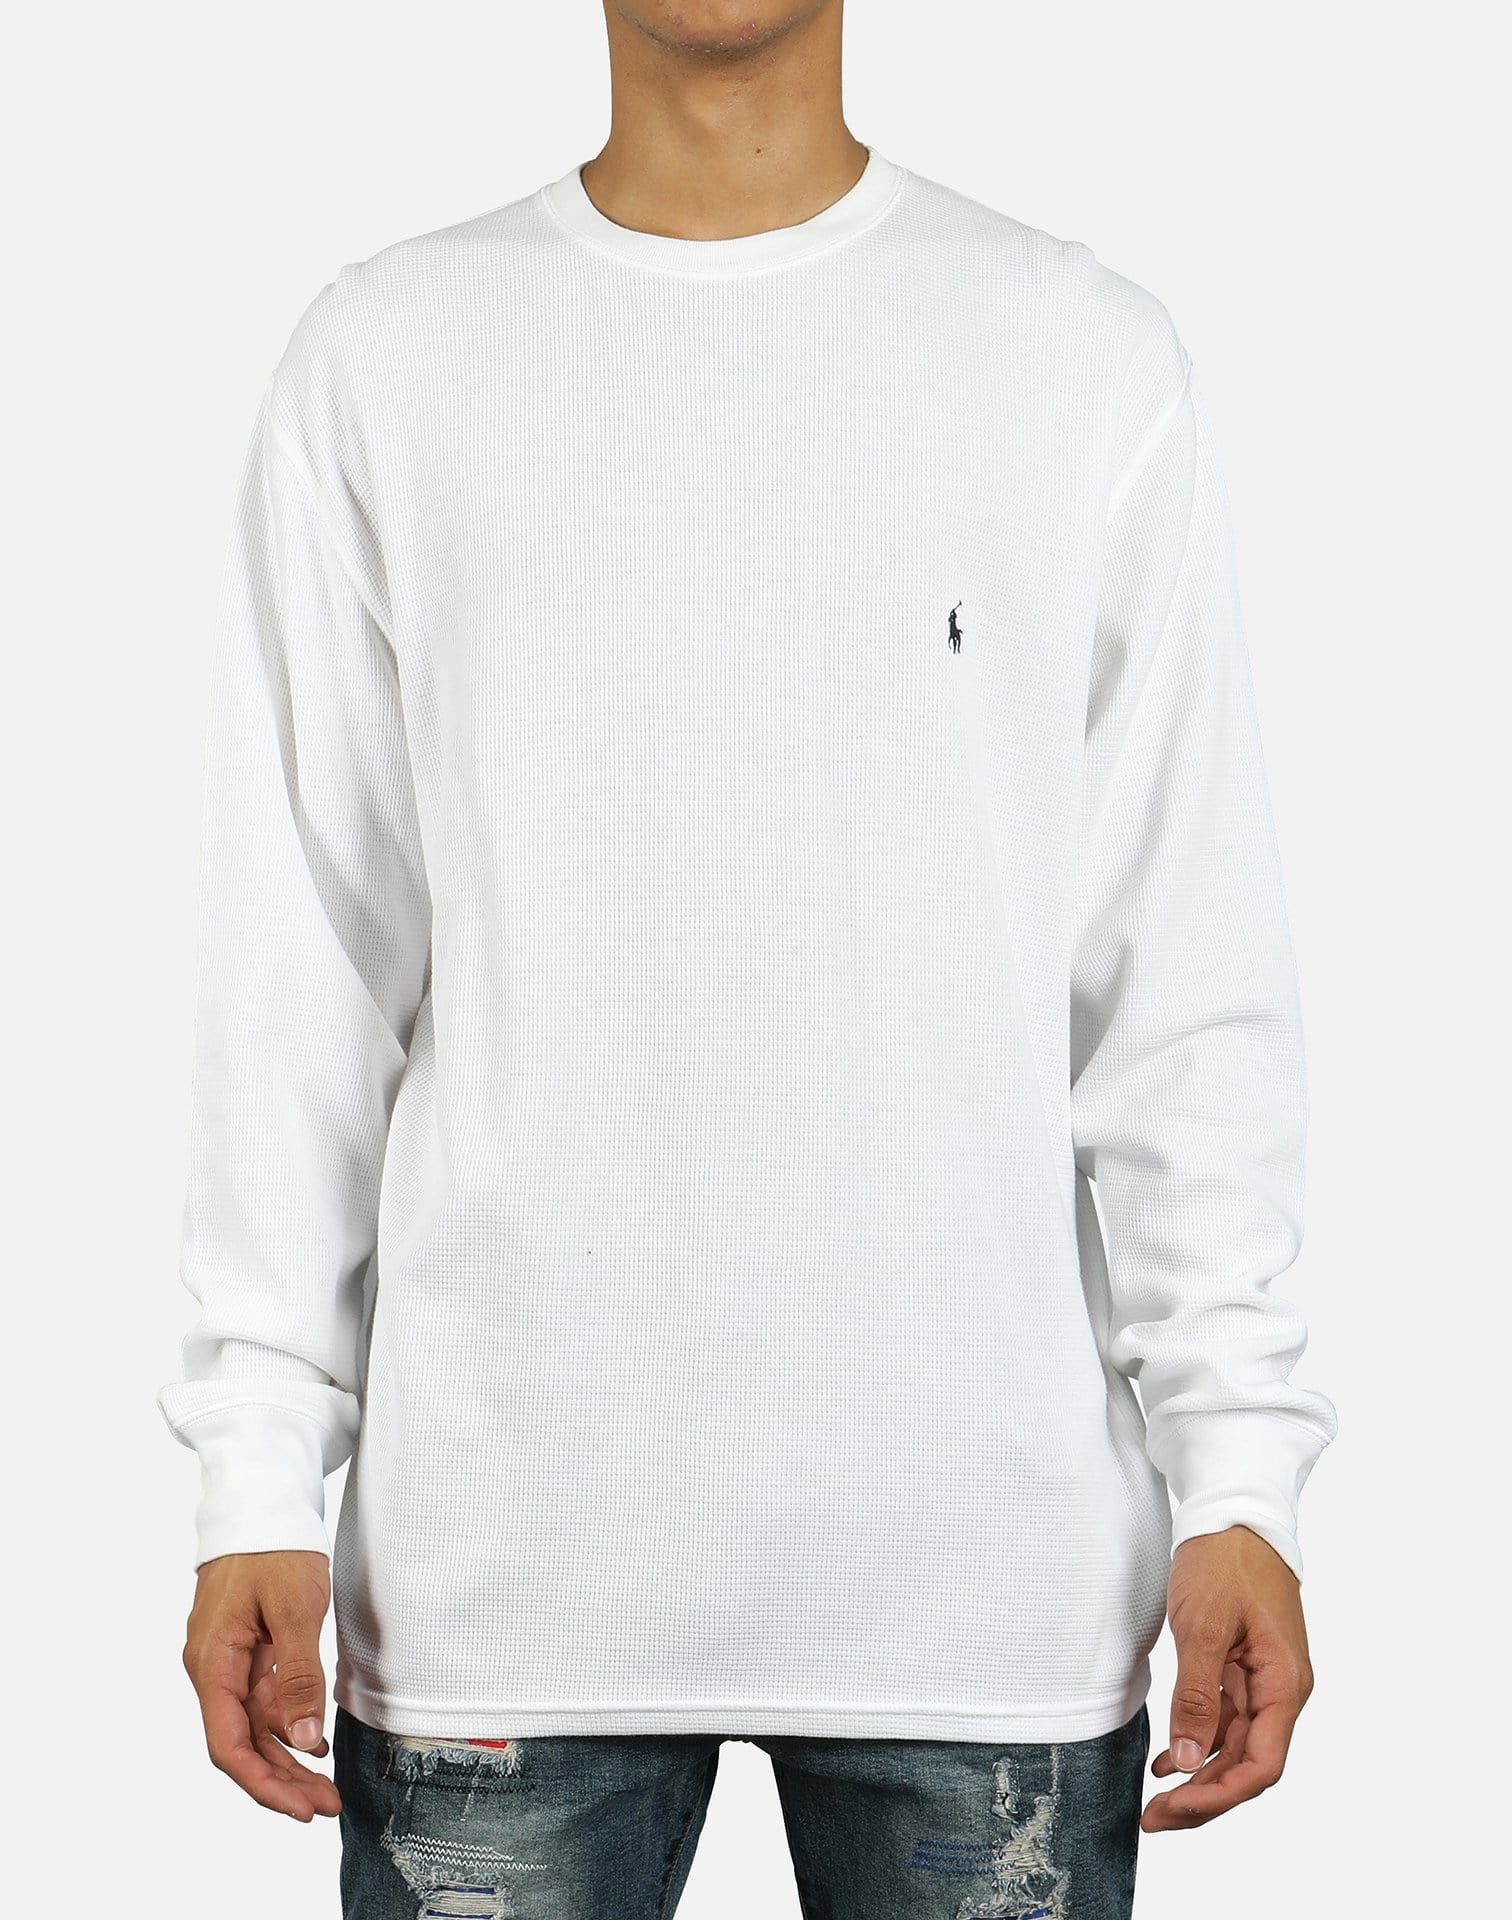 Polo Men's Waffle Knit Crewneck Thermal